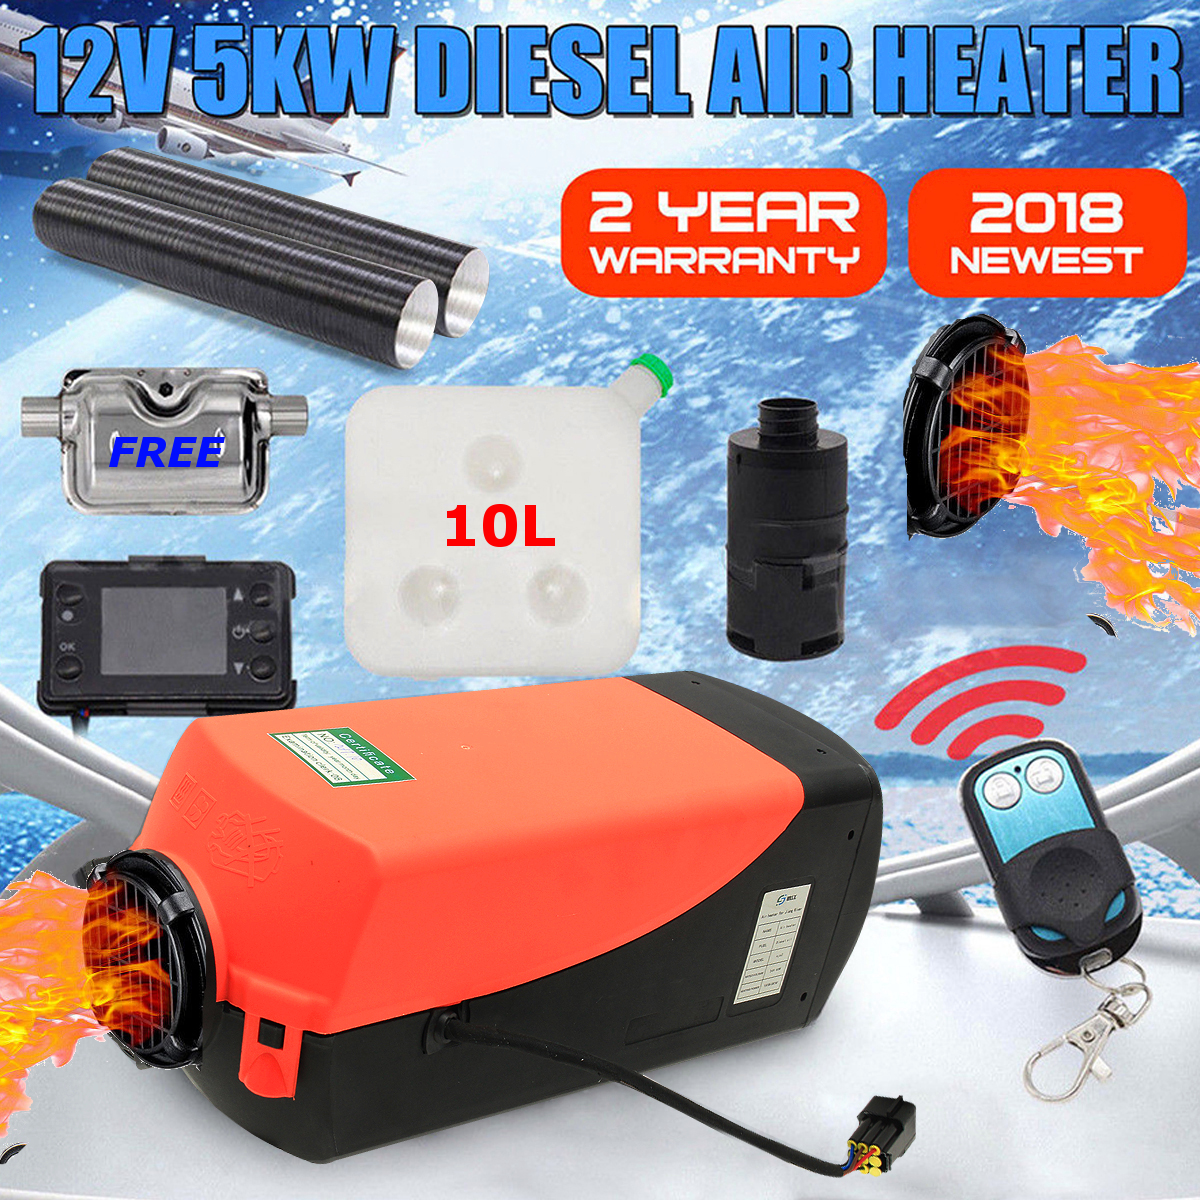 12V 5000W LCD Monitor Air diesels Fuel Heater Single Hole 5KW For Boats Bus Car Heater With Remote Control and Silencer For free12V 5000W LCD Monitor Air diesels Fuel Heater Single Hole 5KW For Boats Bus Car Heater With Remote Control and Silencer For free